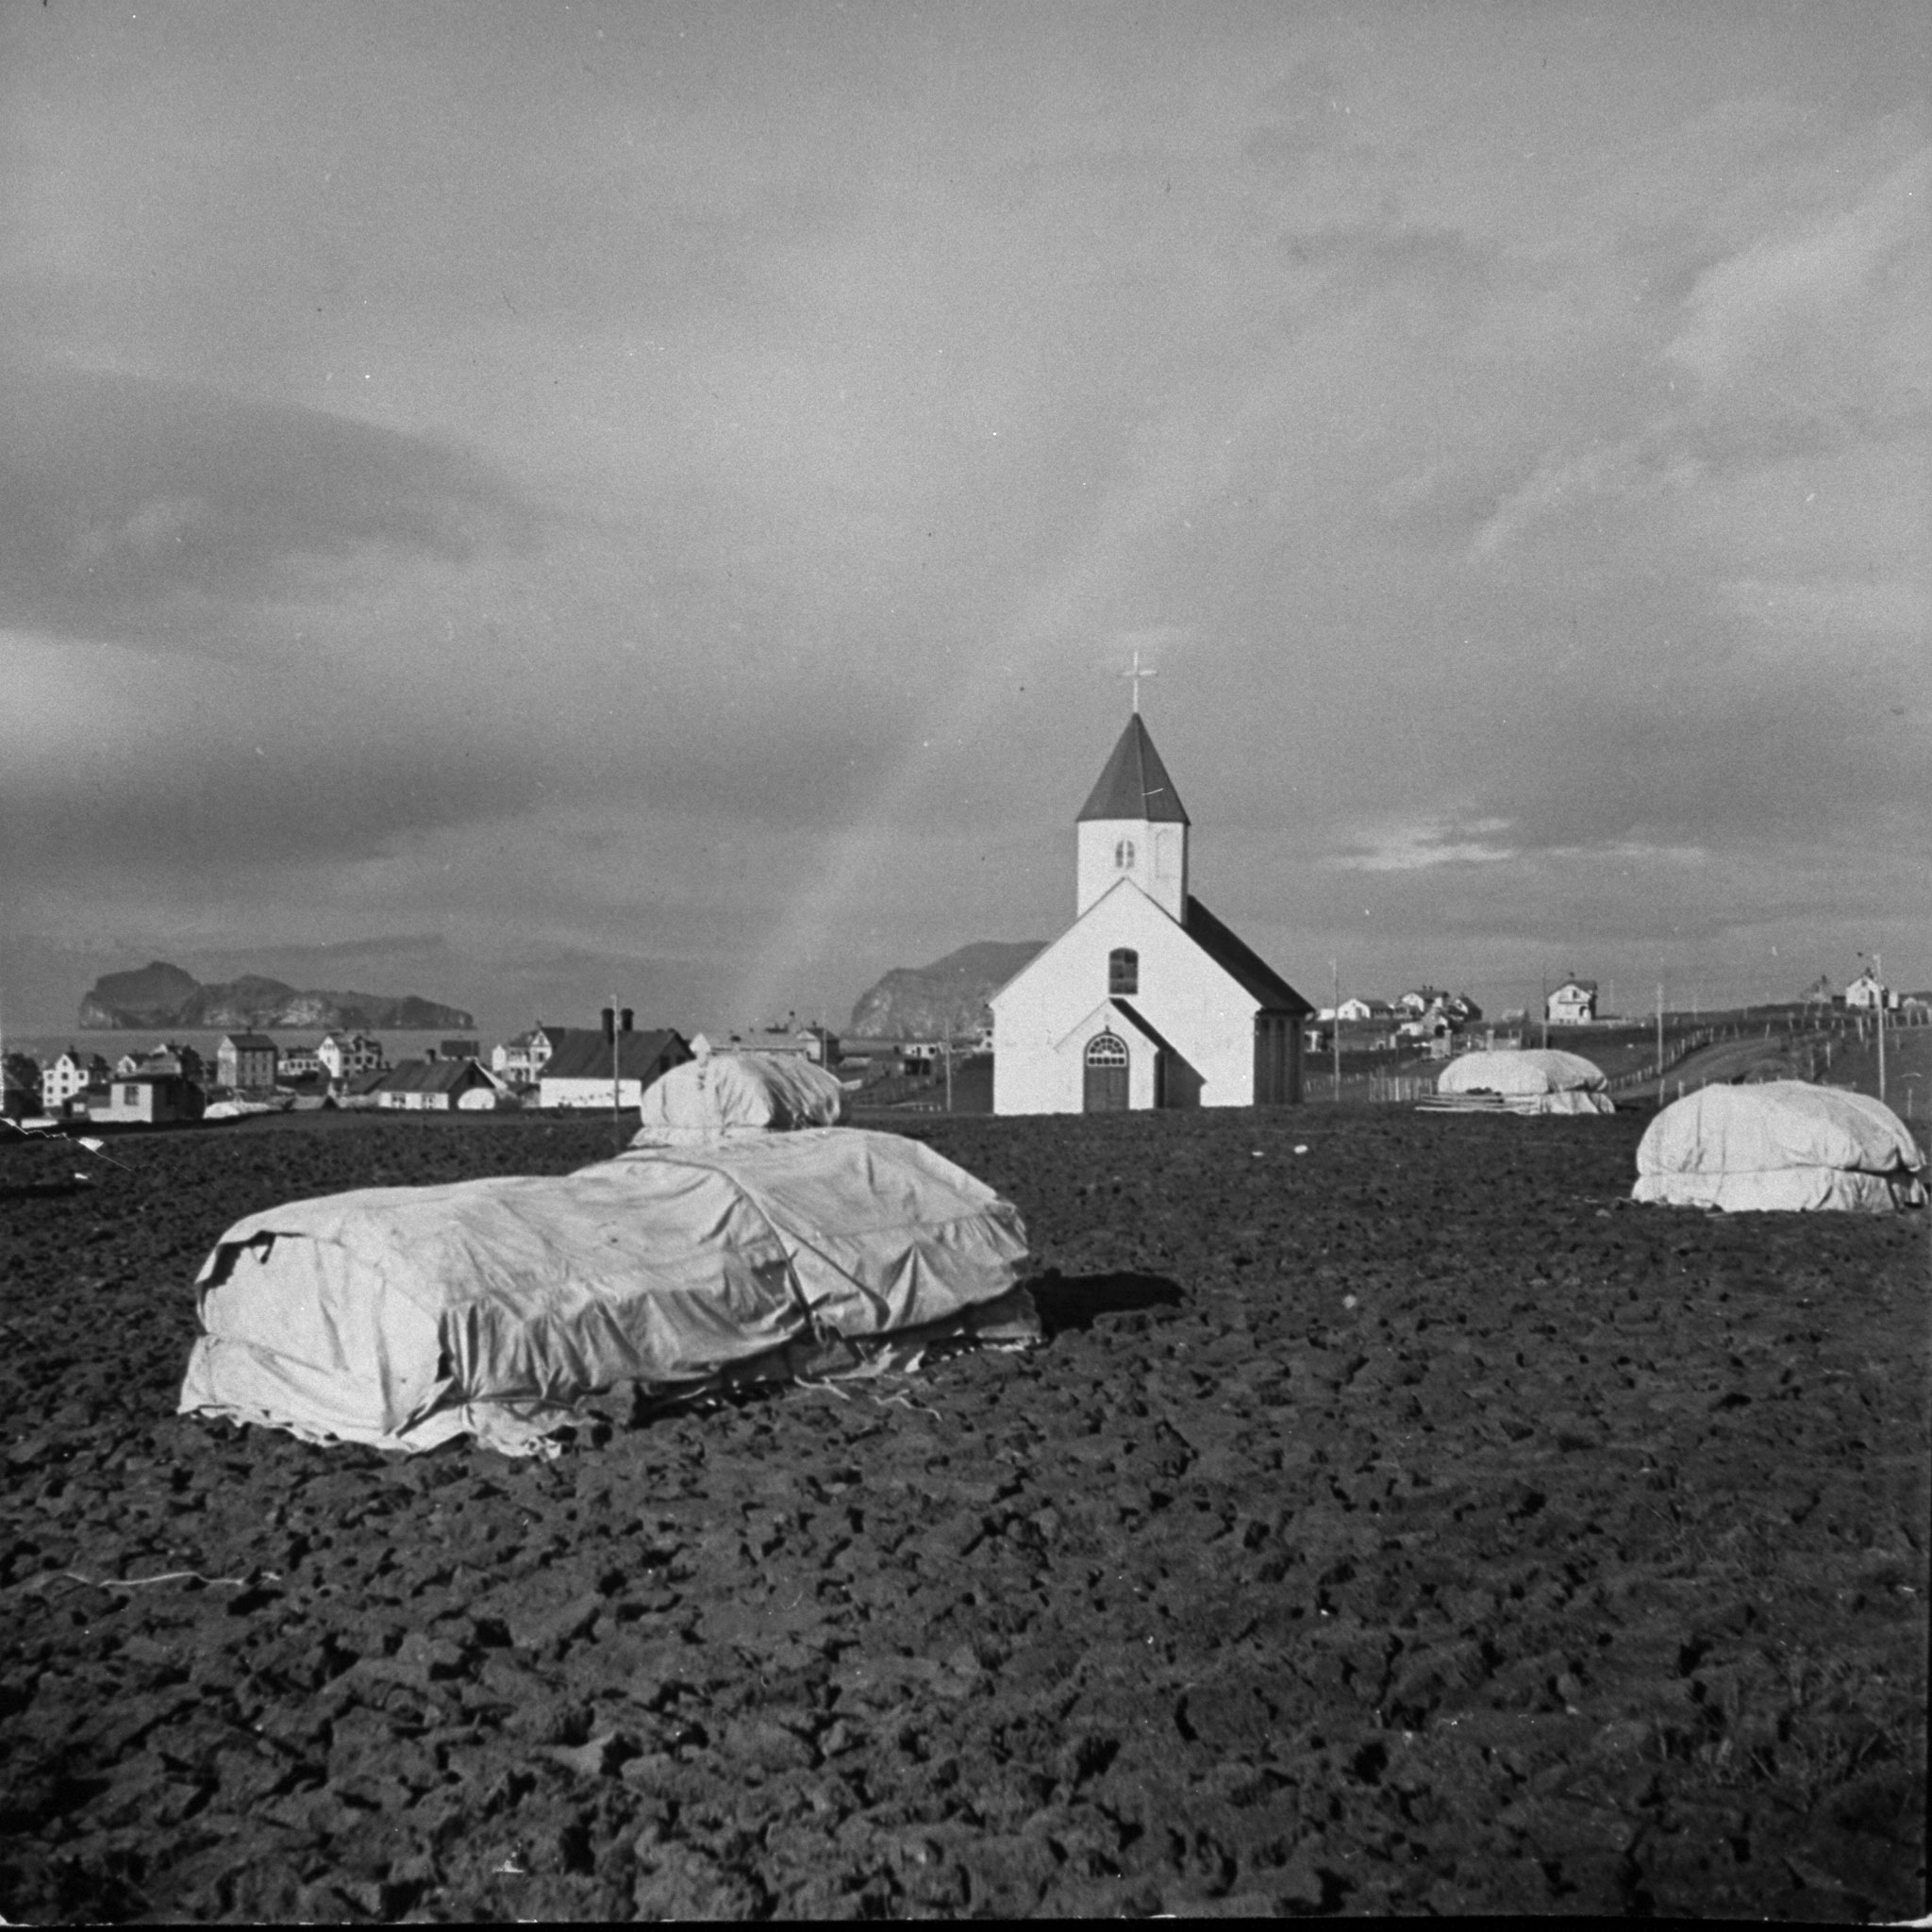 """<b>Caption from print:</b> """"Fishing is one of Iceland's most important industries. Thousands and thousands of cod and haddock are caught in the winter and salted. On porous lava blocks at the foot of volcanoes the fish are dried in the sun."""""""